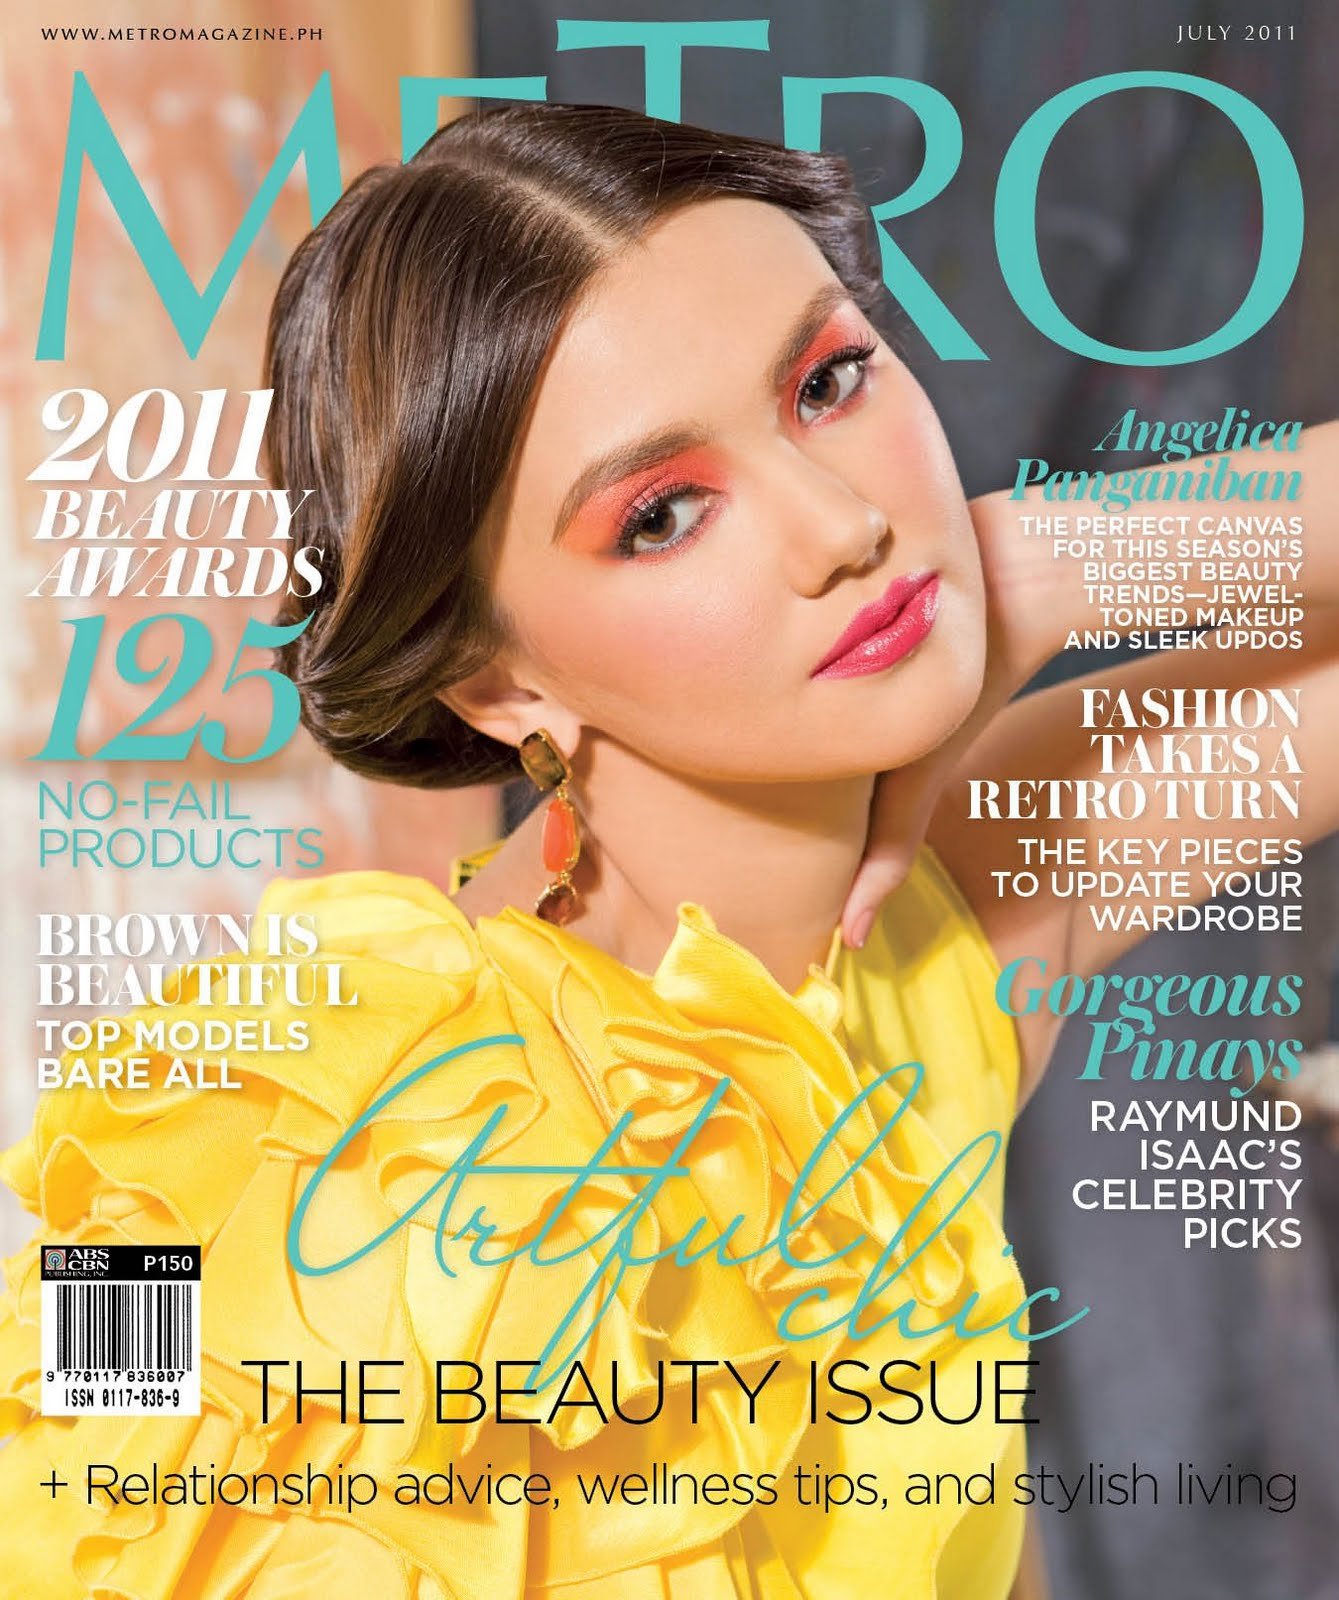 Angelica Panganiban On The Cover Of Metro Magazine July 2011 Lcd